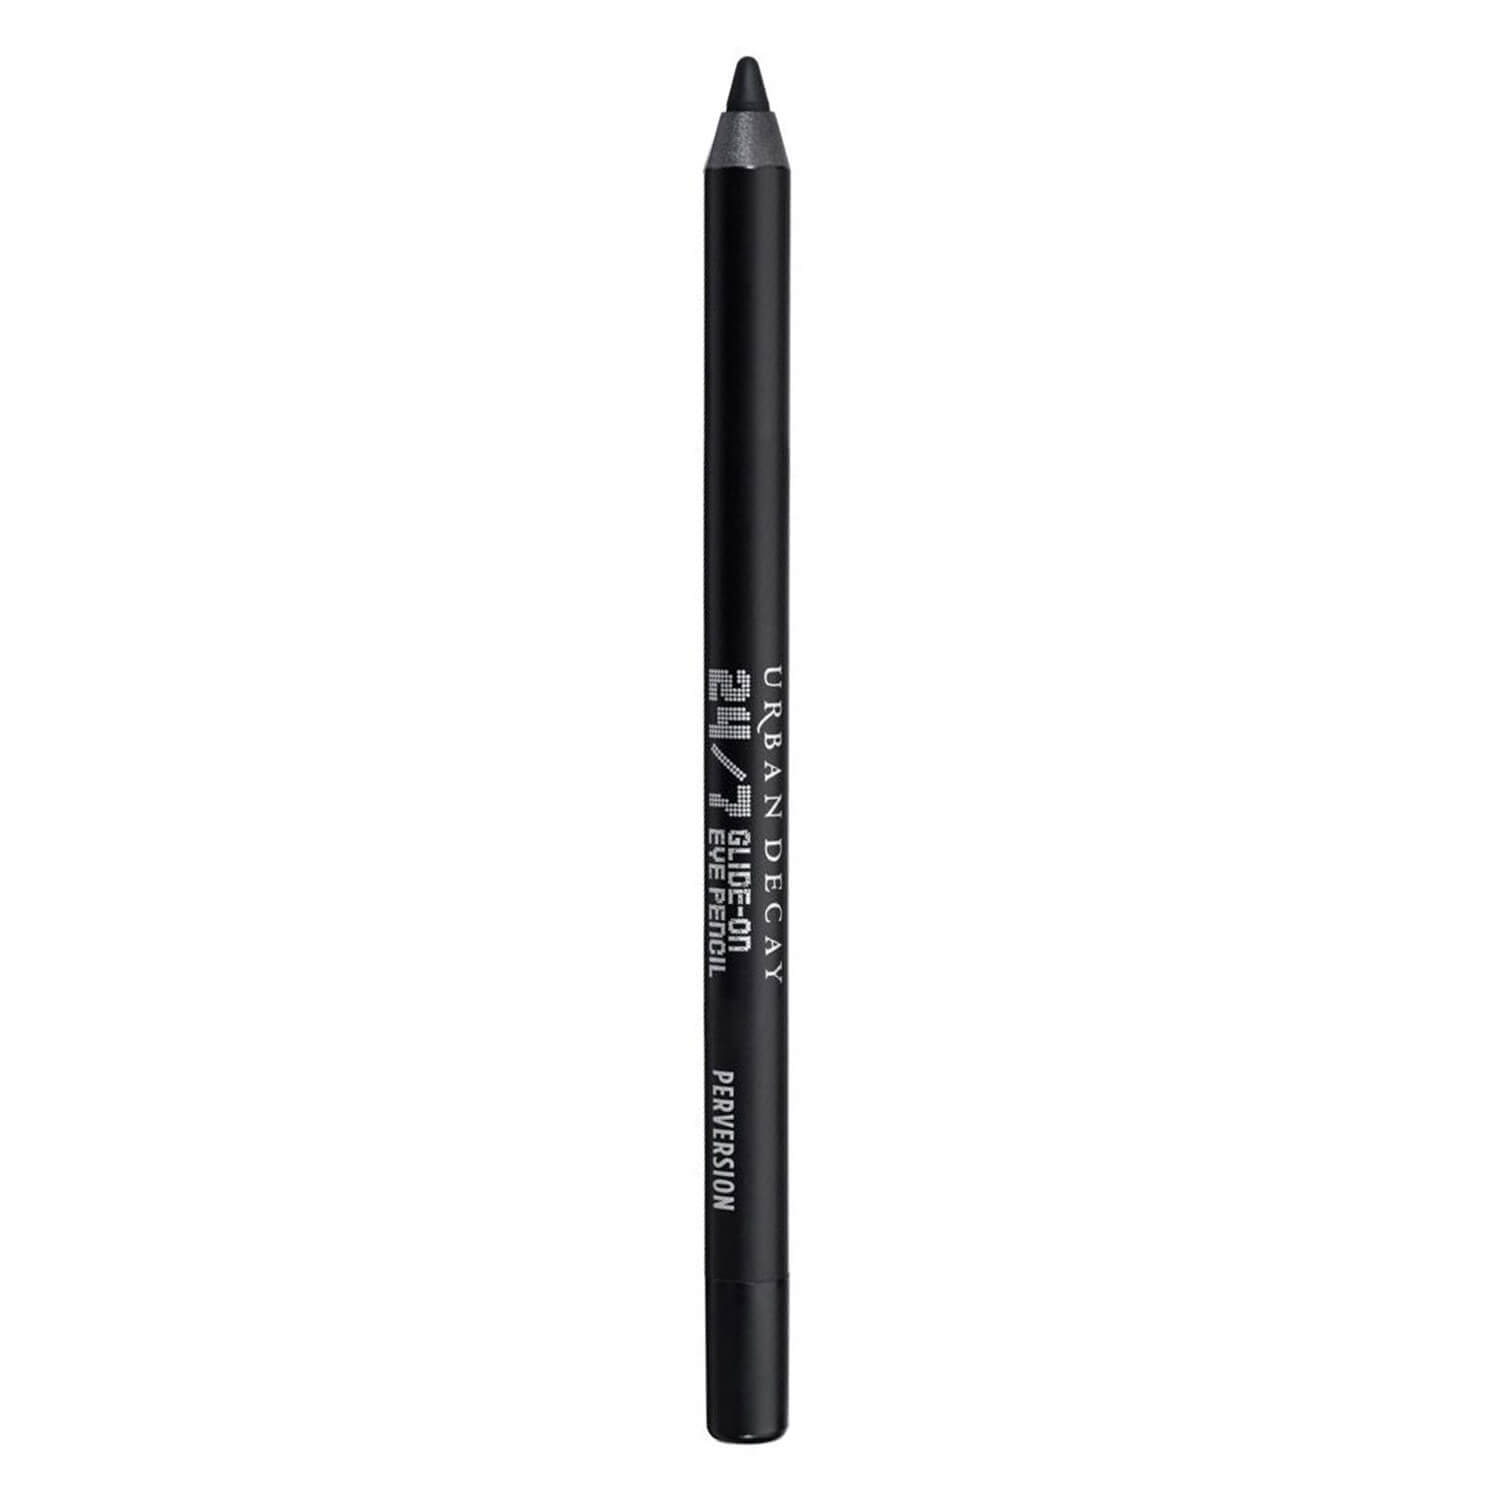 24/7 Glide-On - Eye Pencil Perversion